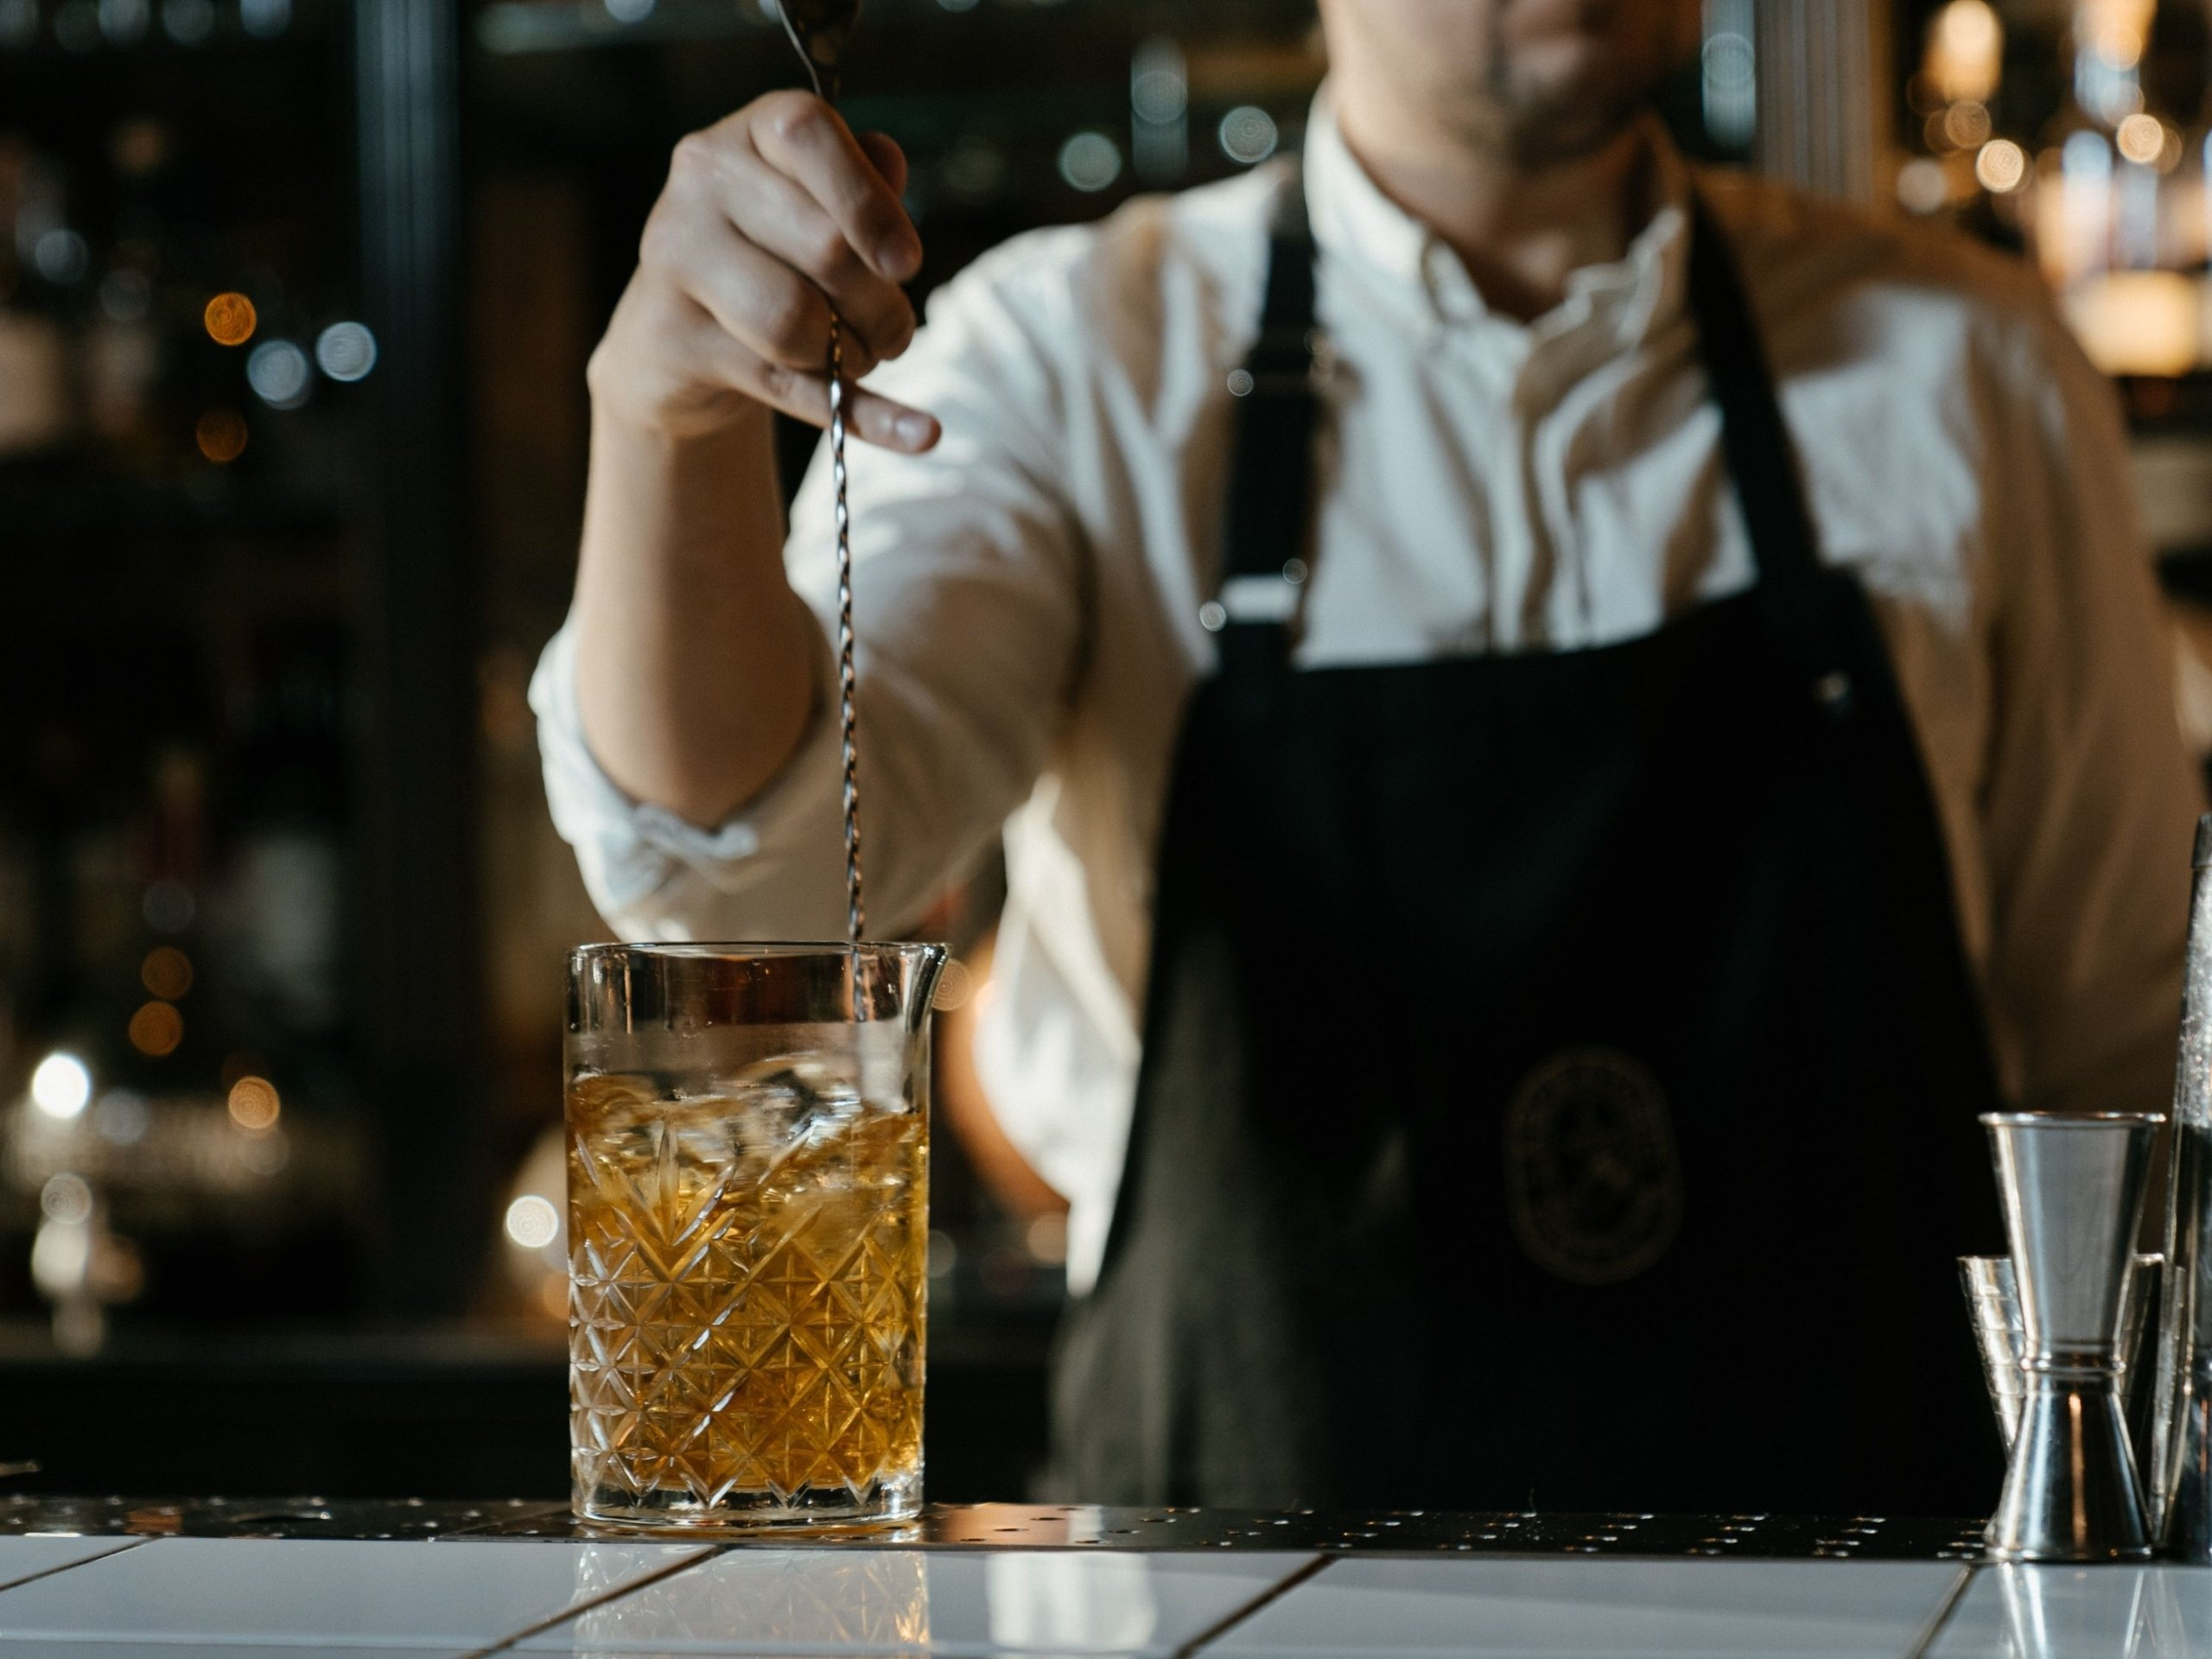 A hand mixing a drink with a mixing spoon on the bar counter